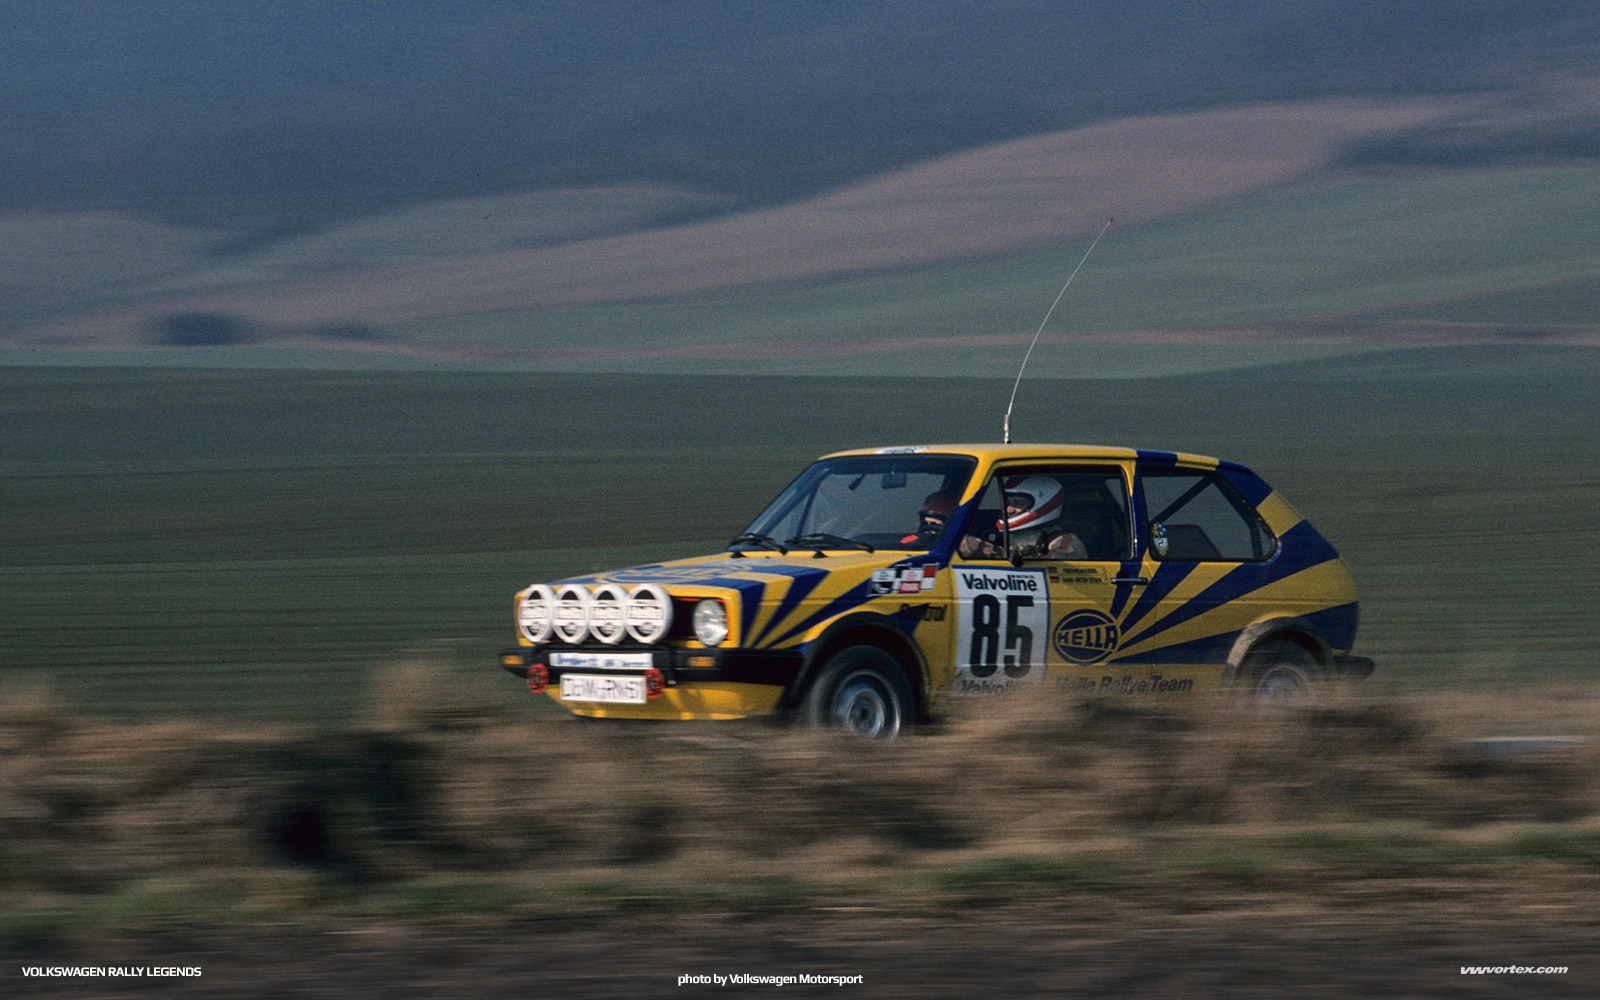 volkswagen-rally-legends-380